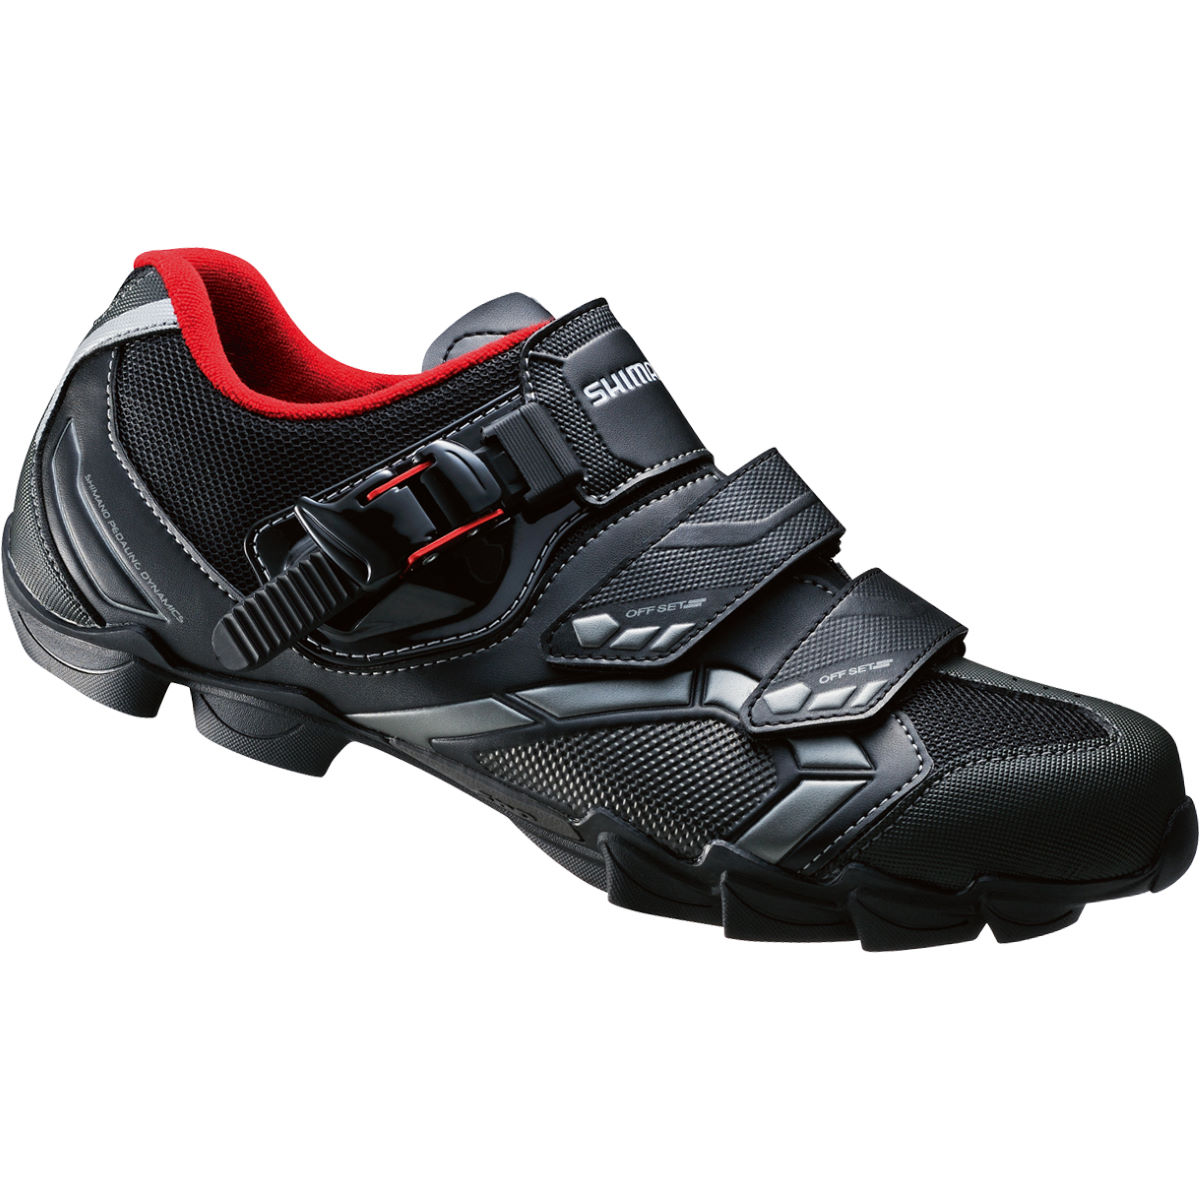 Shimano M088 SPD Mountain Bike Shoes - Wide Fit